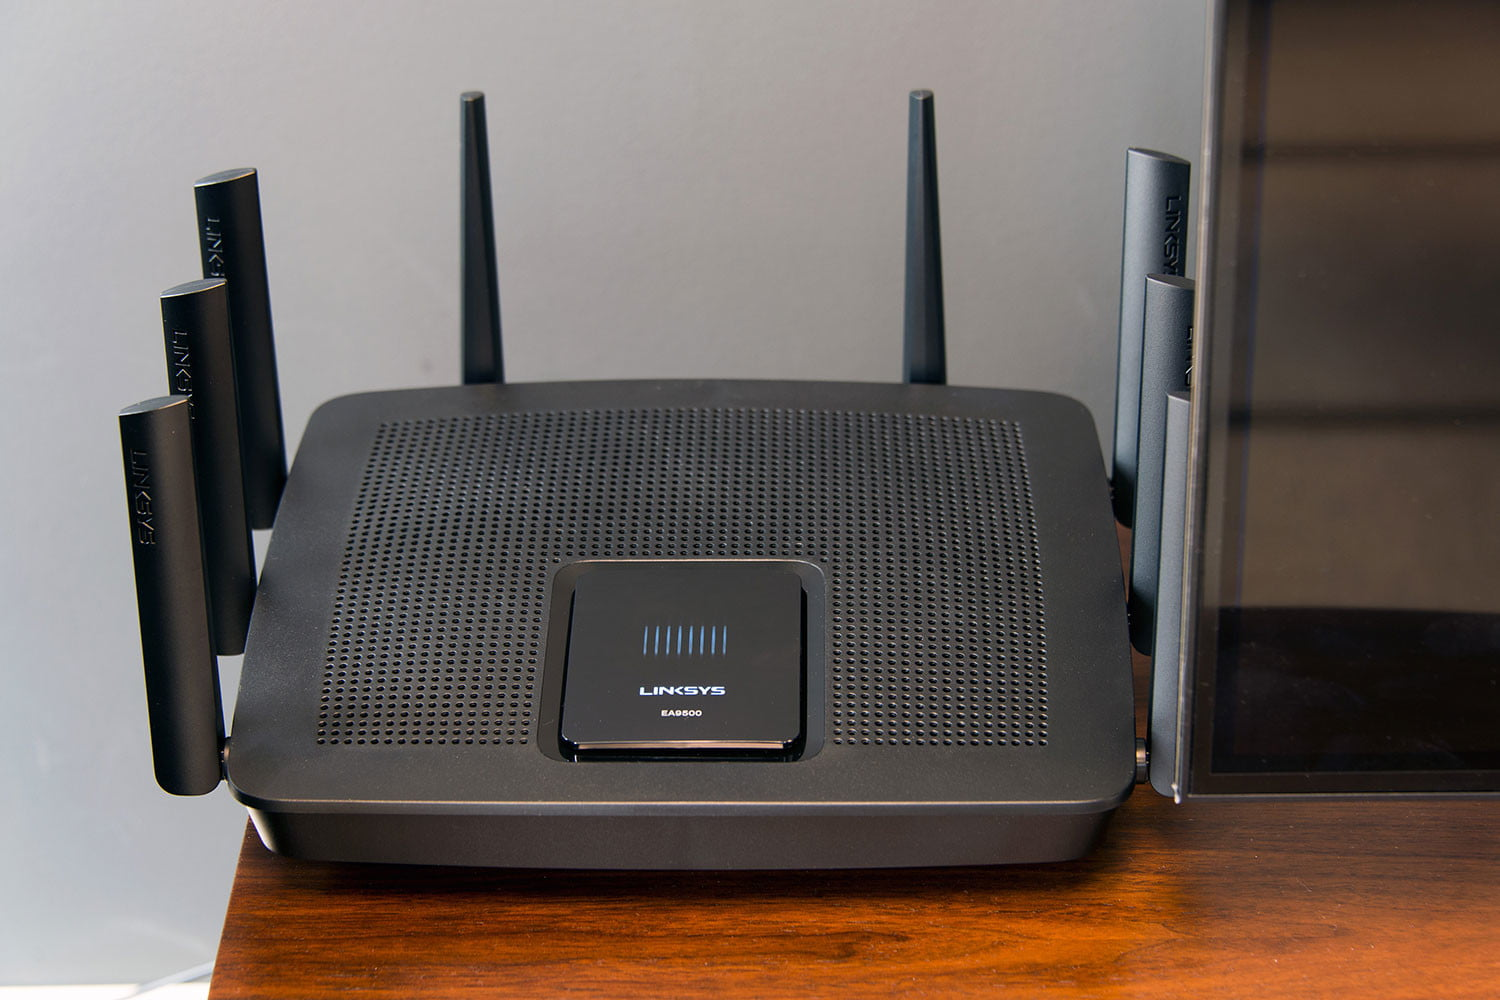 How do I setup my Linksys Smart WiFi